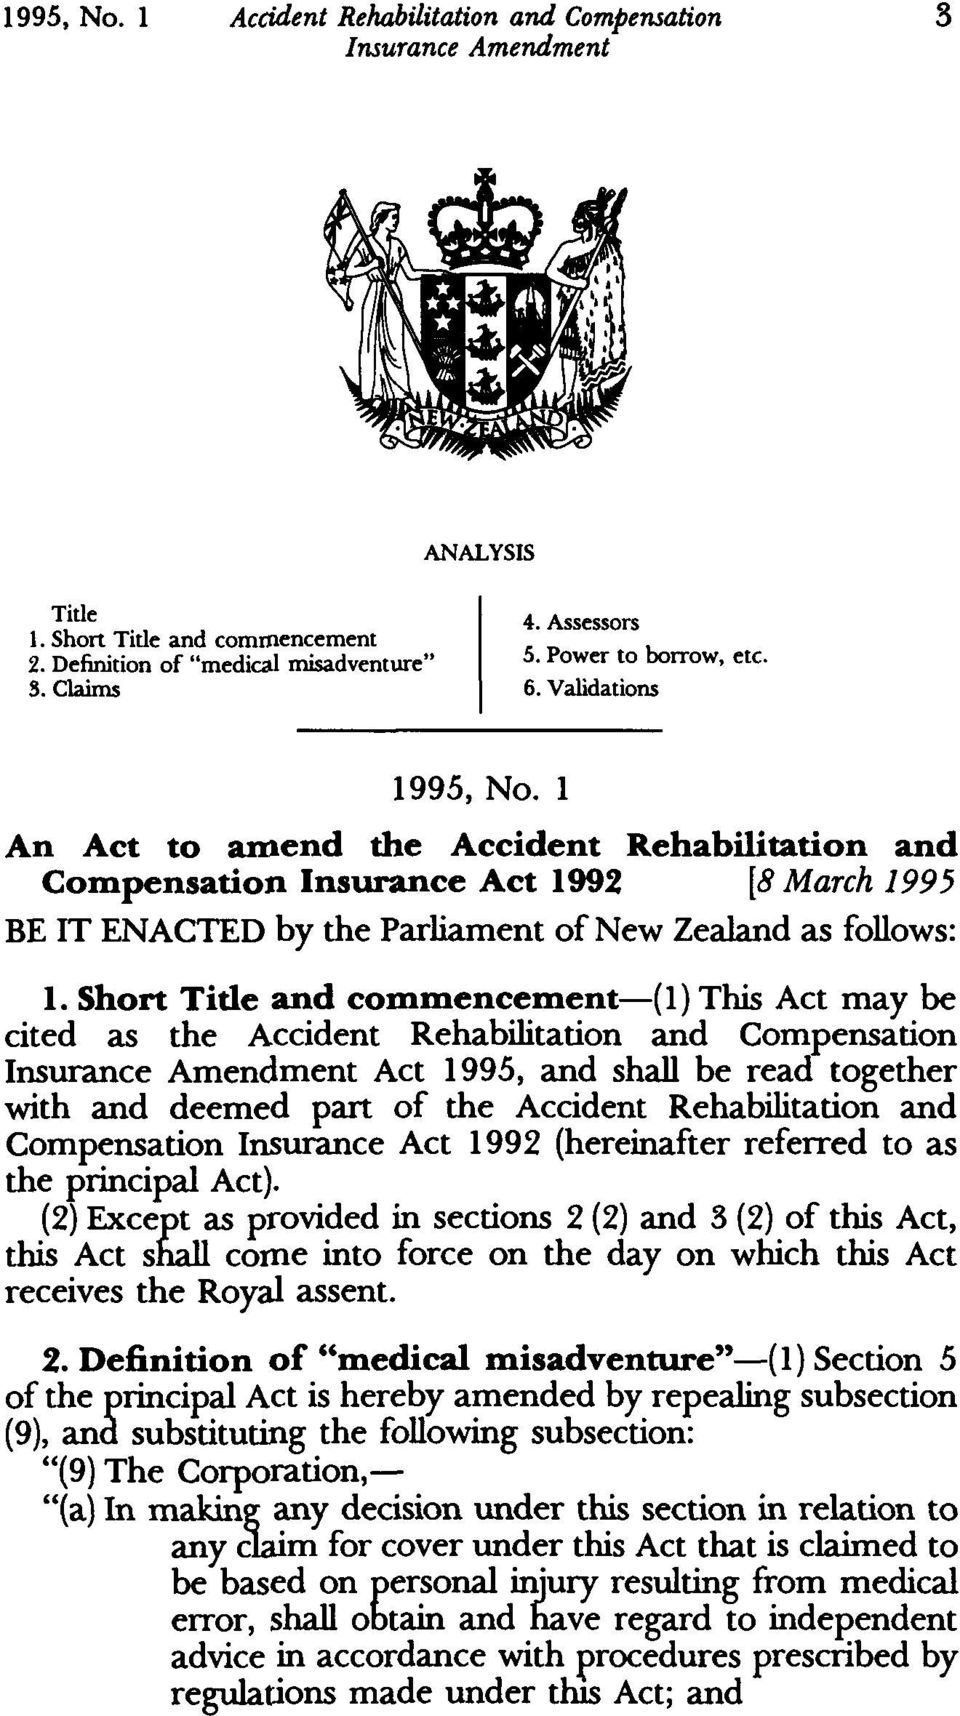 Short Tide and commencement-(i) This Act may be cited as the Accident Rehabilitation and Compensation Act 1995, and shall be read together with and deemed part of the Accident Rehabilitation and